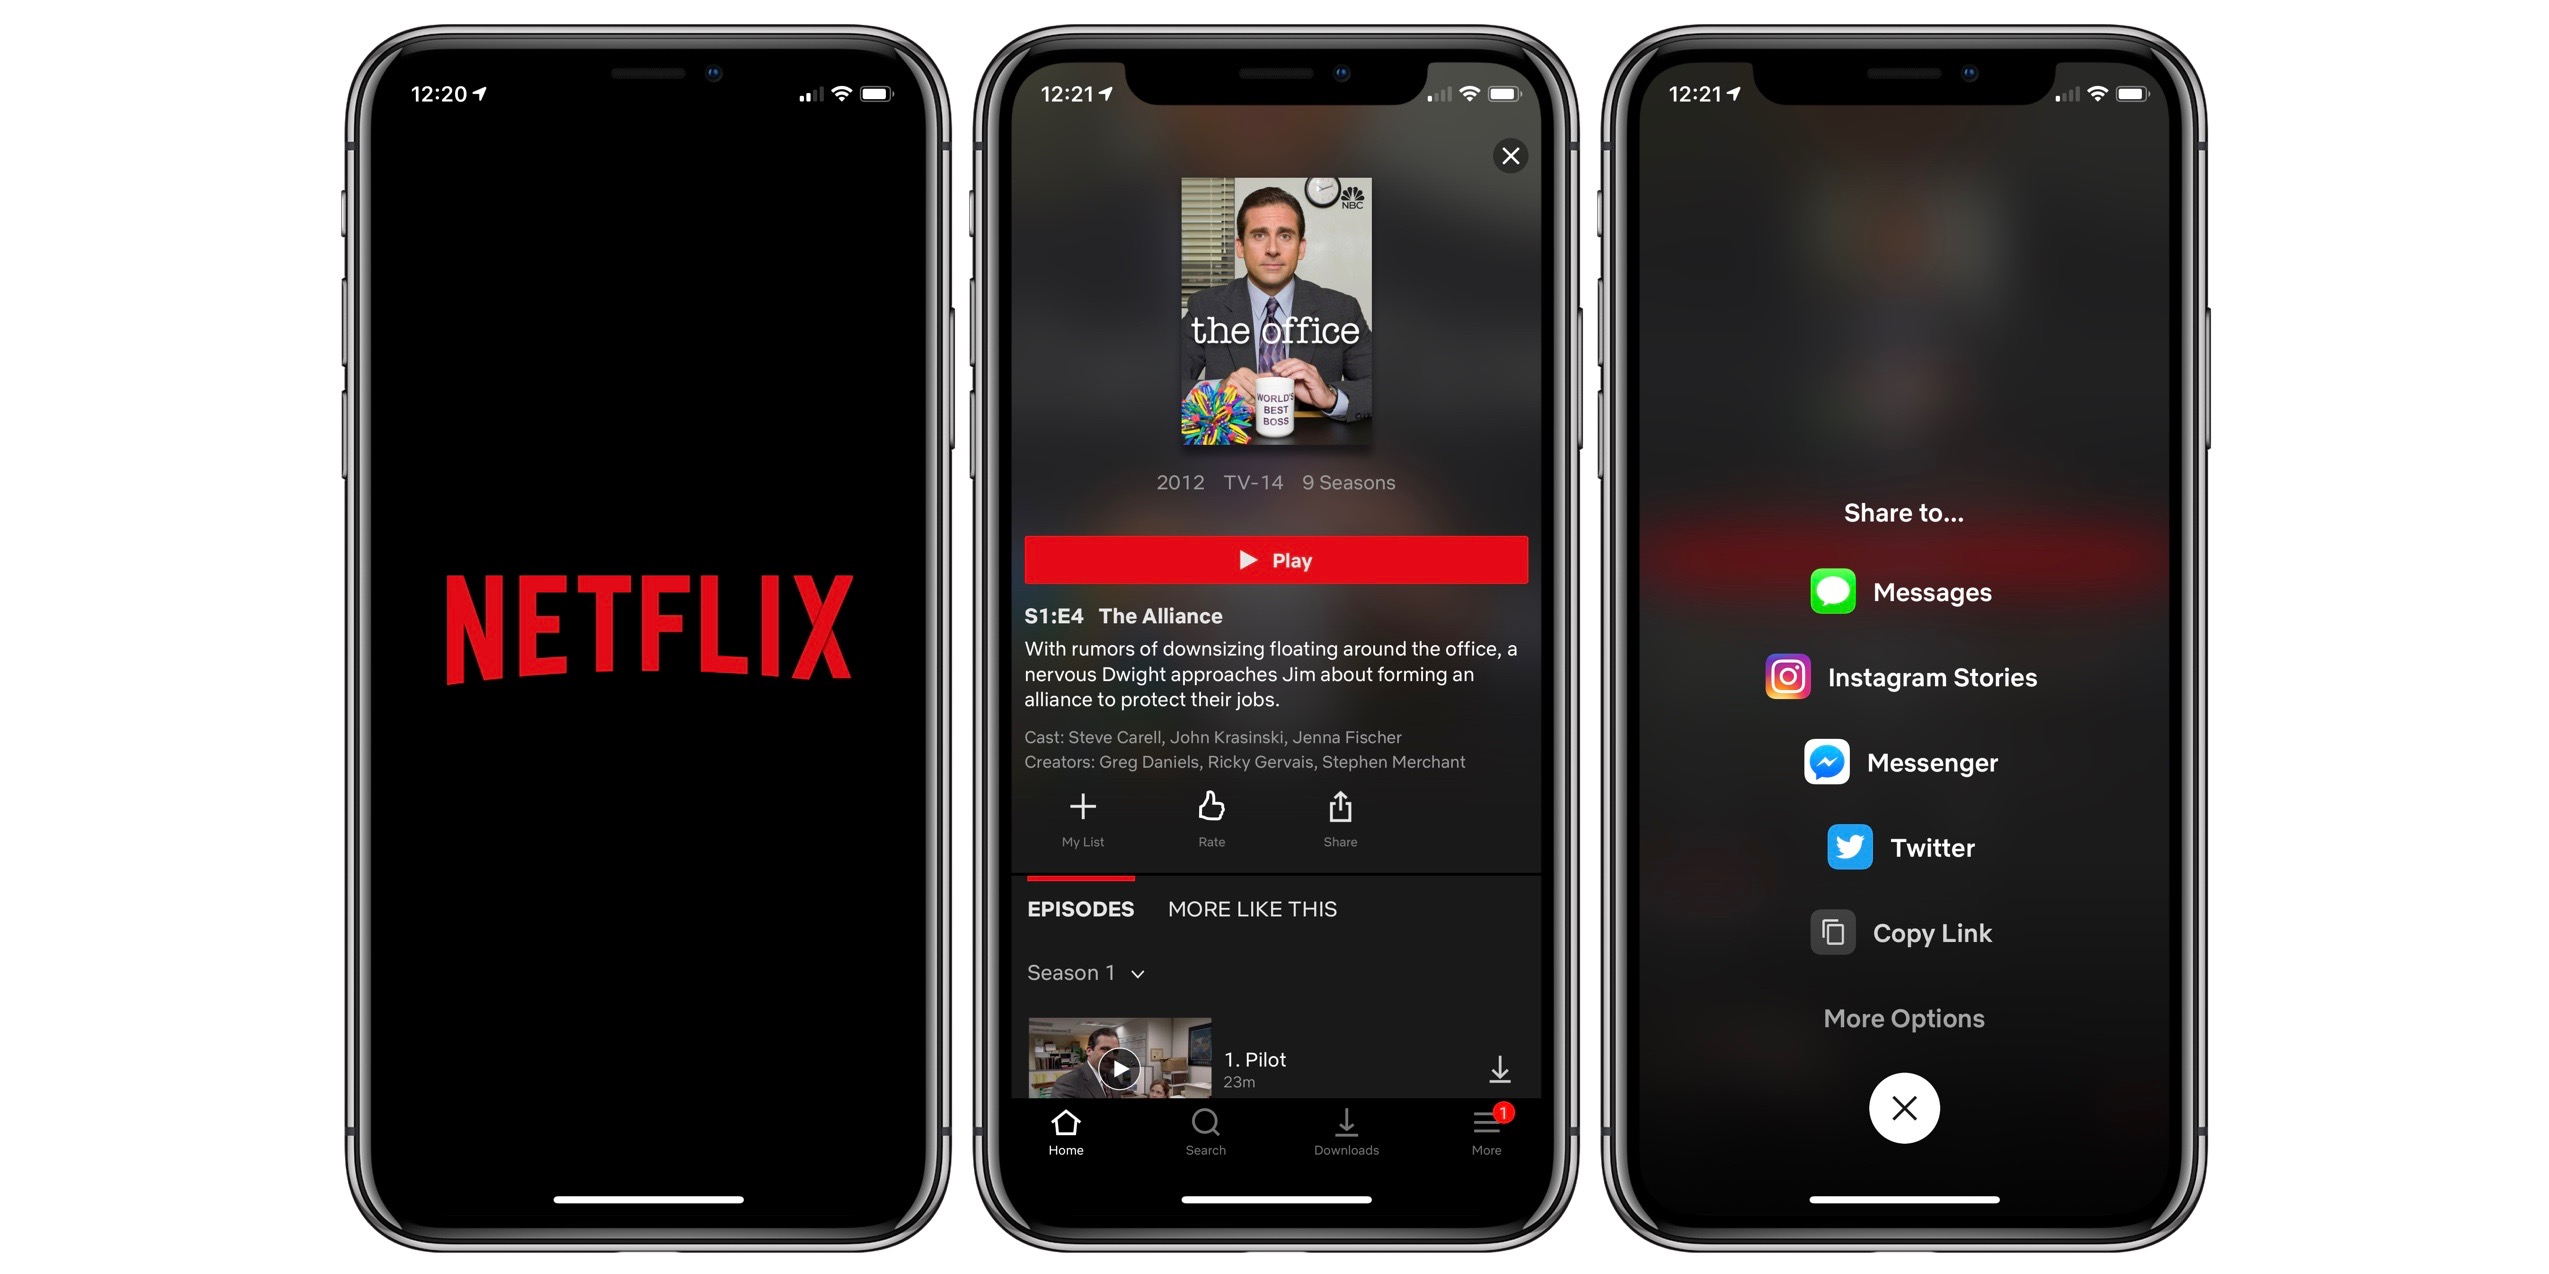 Netflix for iOS launches Instagram integration to let users share movies and TV shows in their Stories